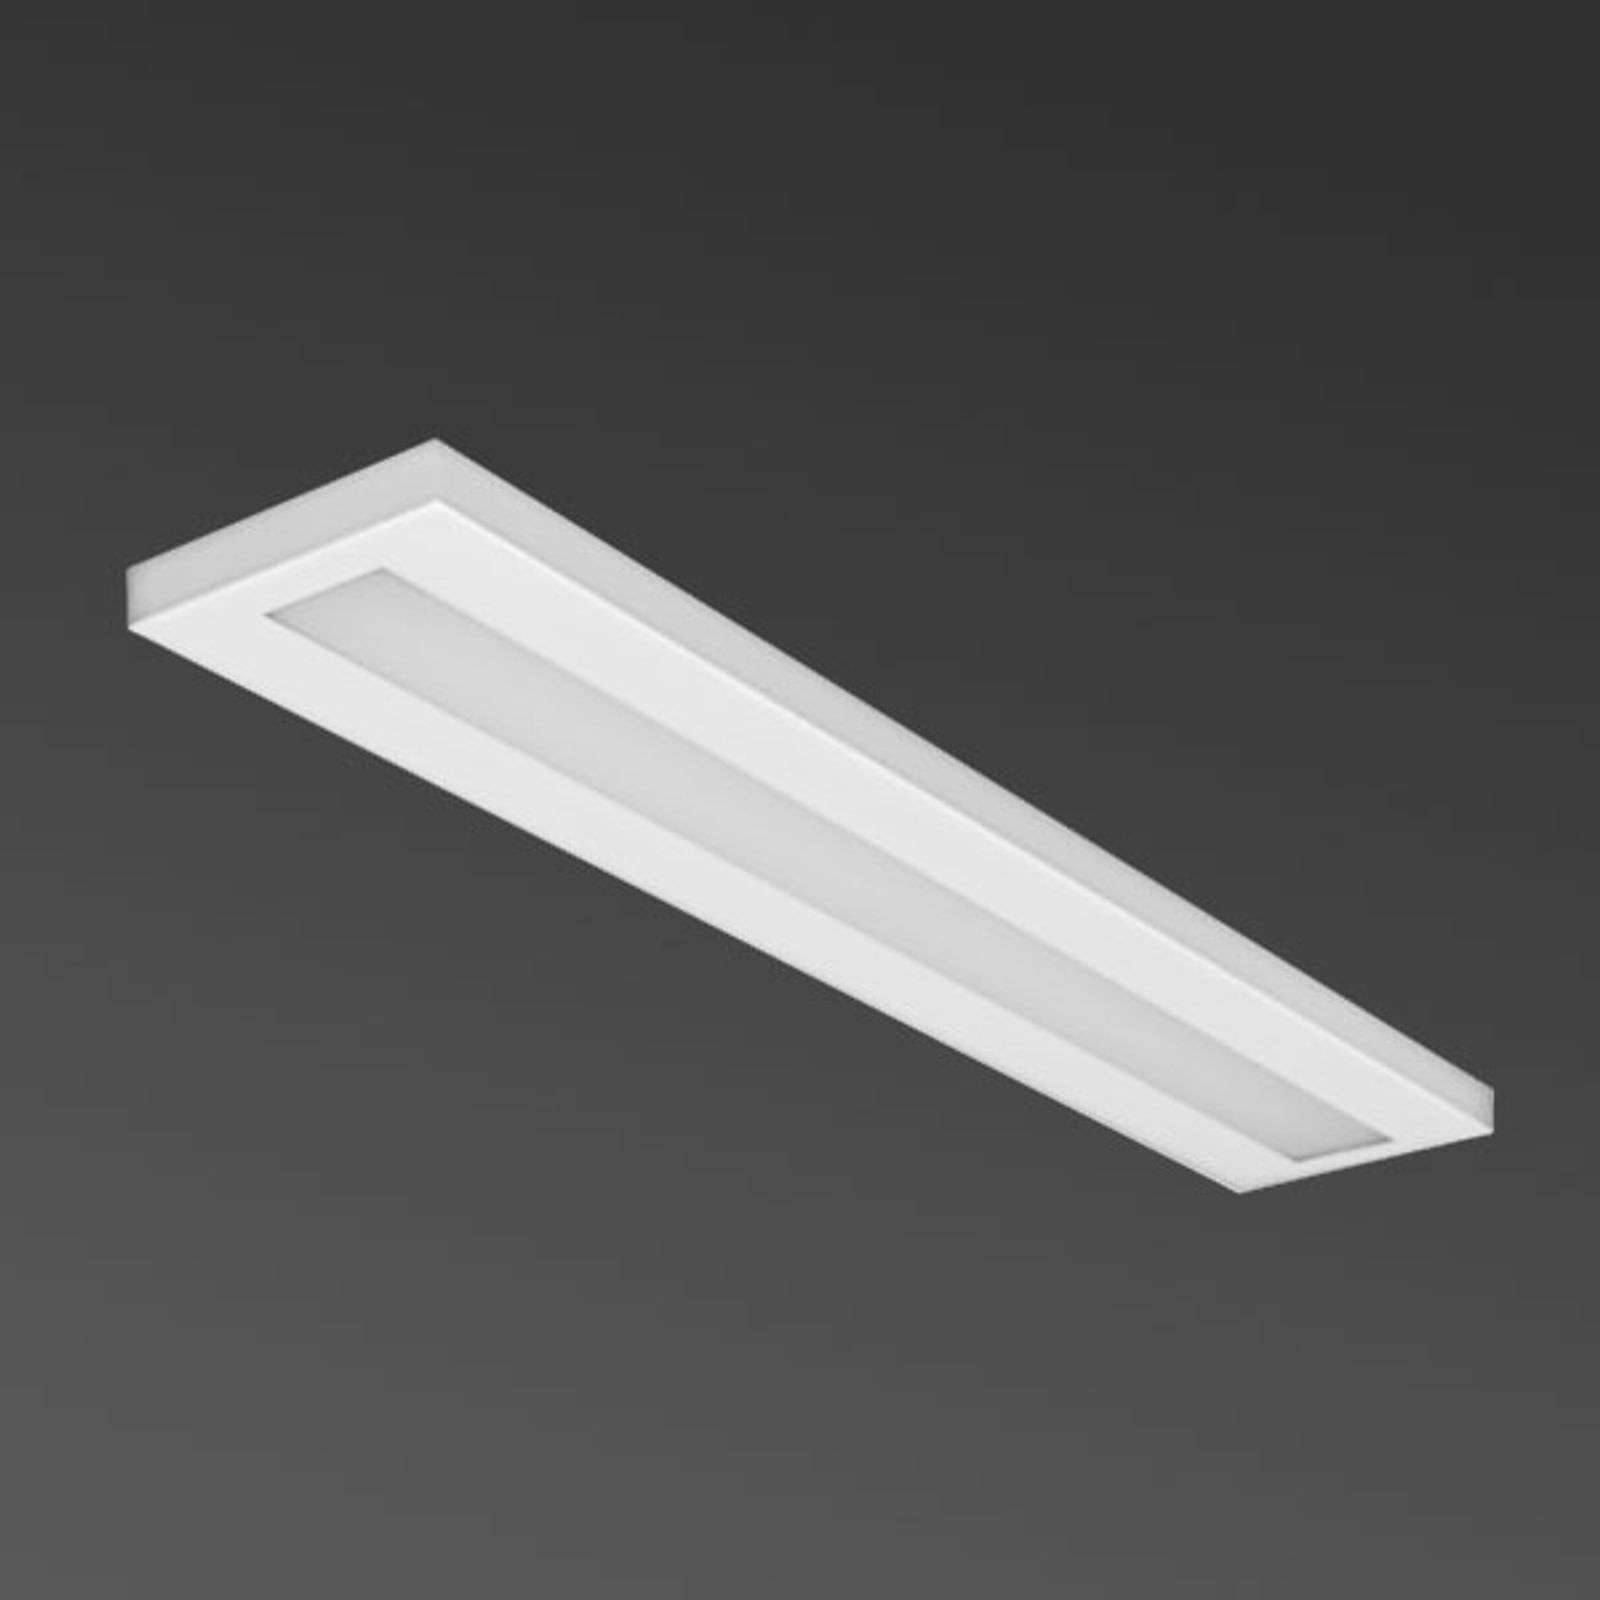 Plafón LED empotrado blanco, rectangular 48 W